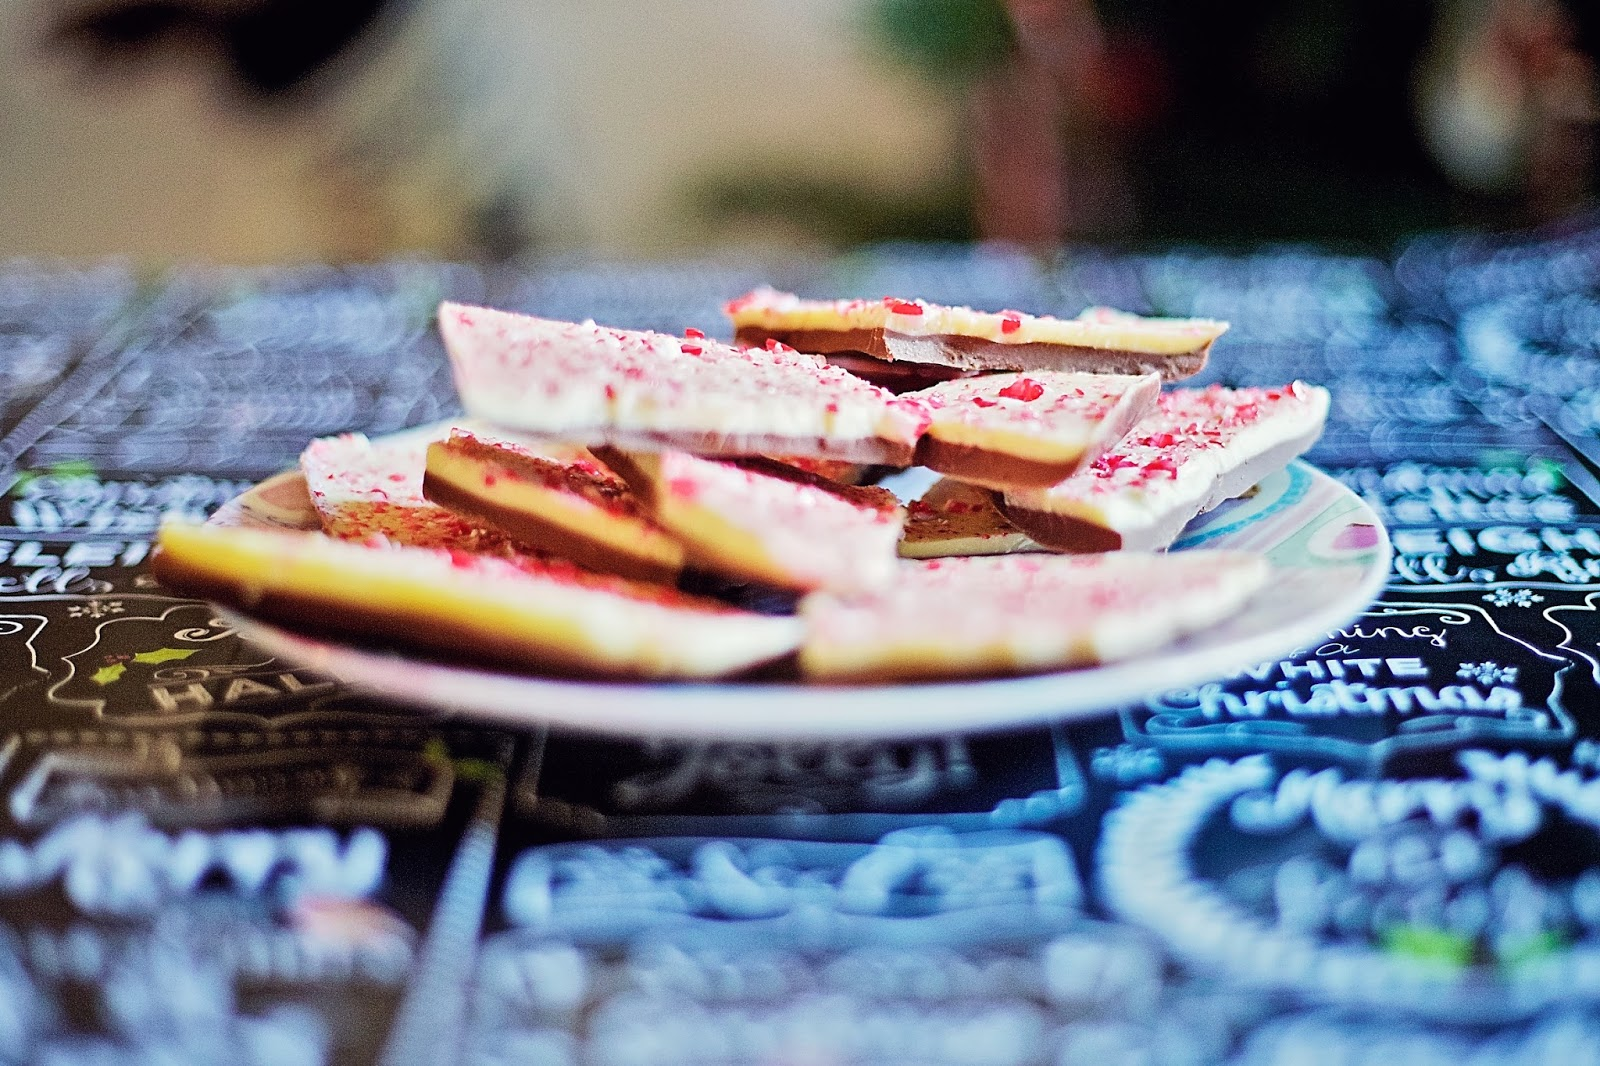 Close up on pieces of peppermint bark on a plate.